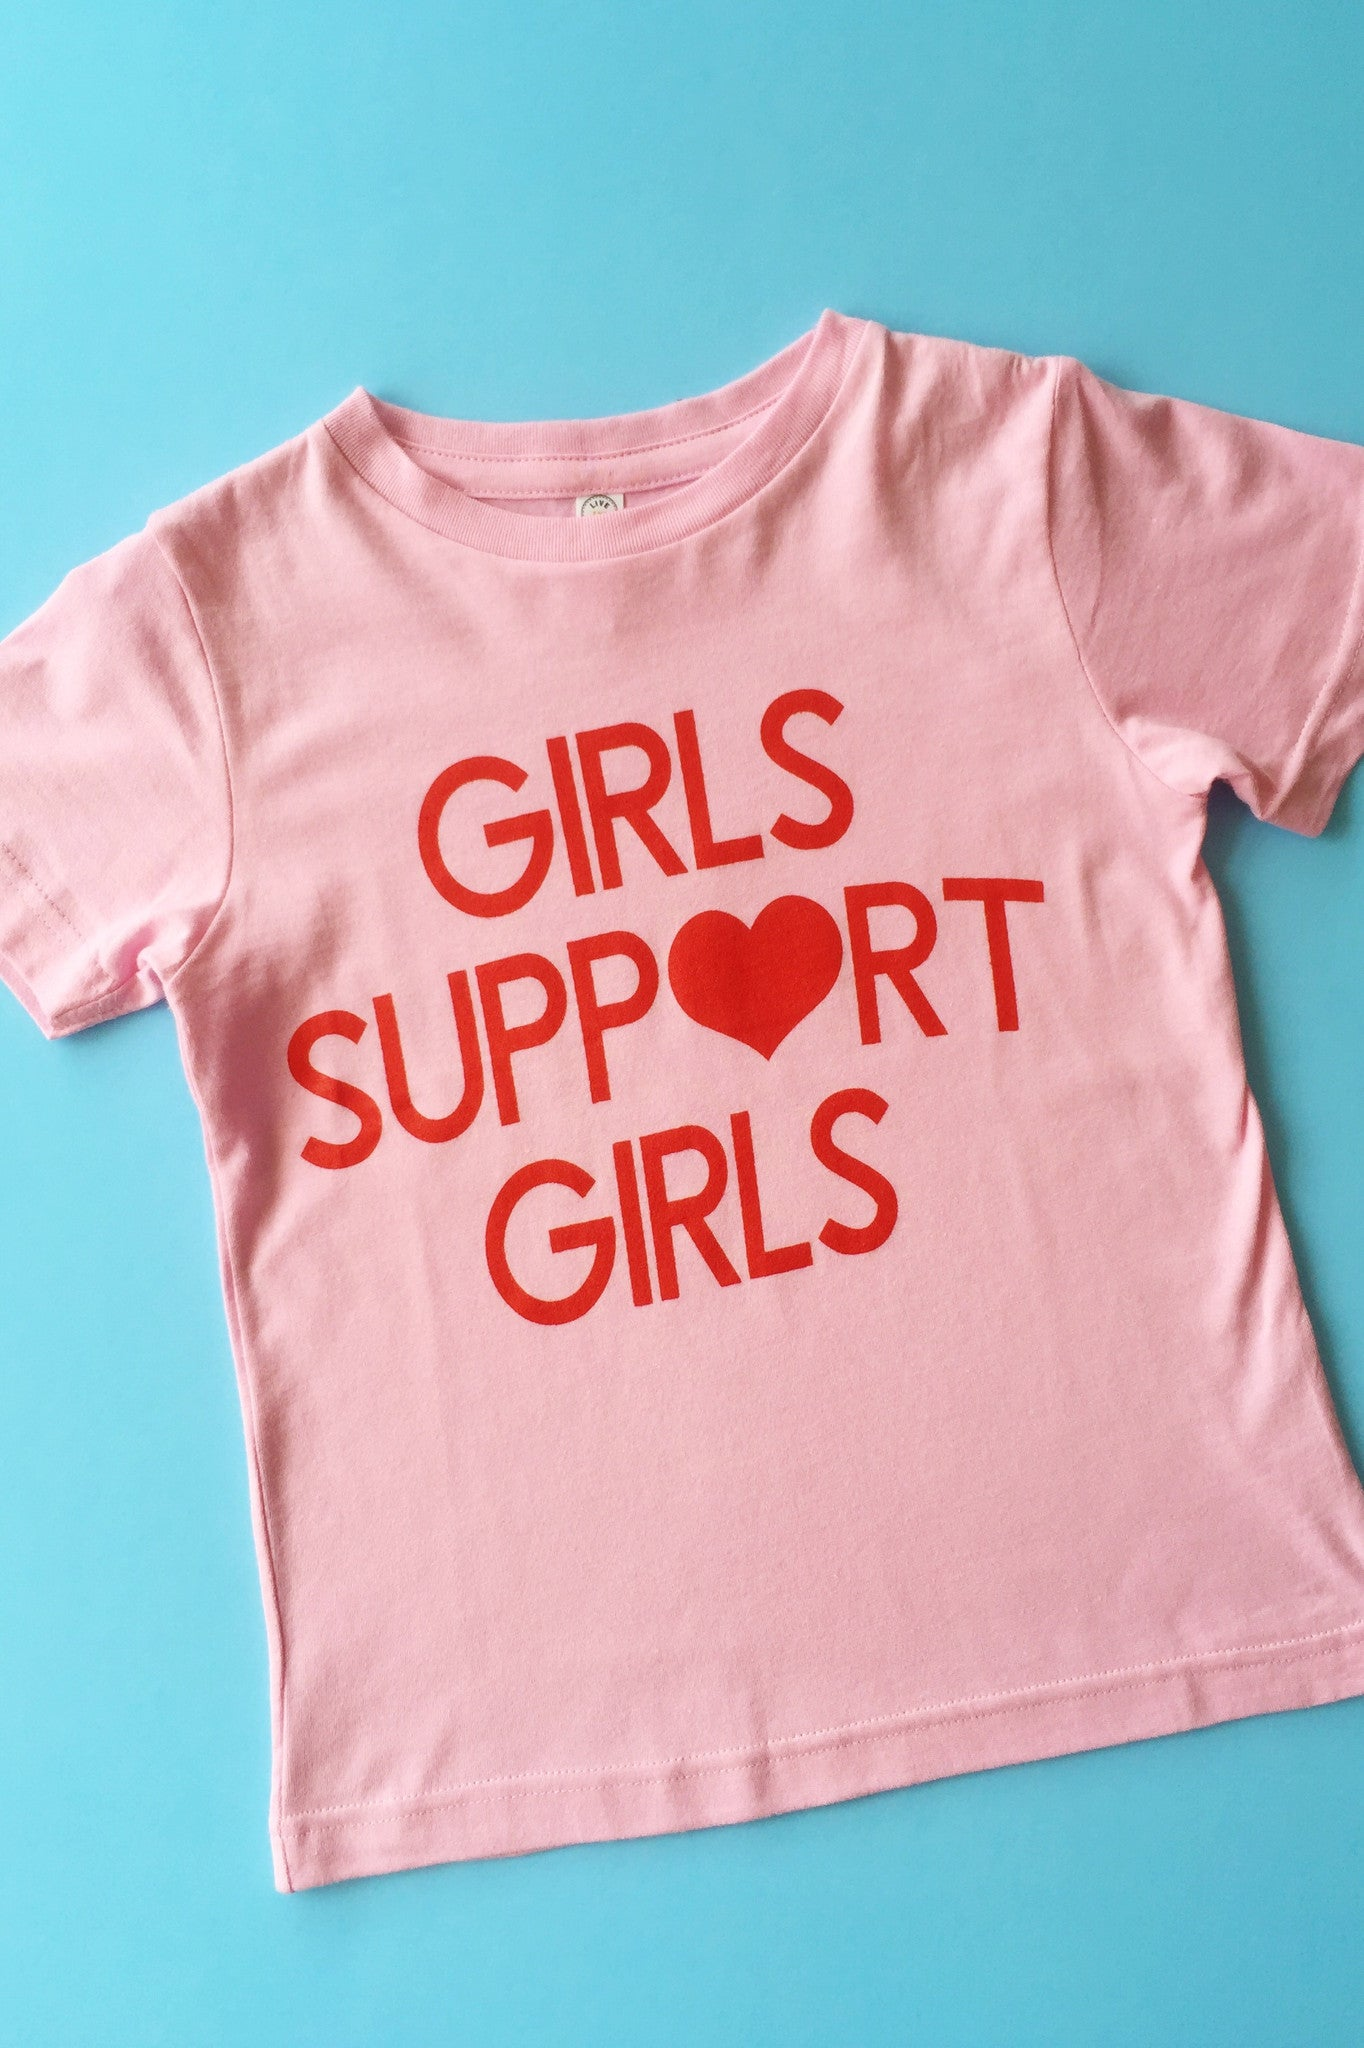 Girls Support Girls Tee - Youth